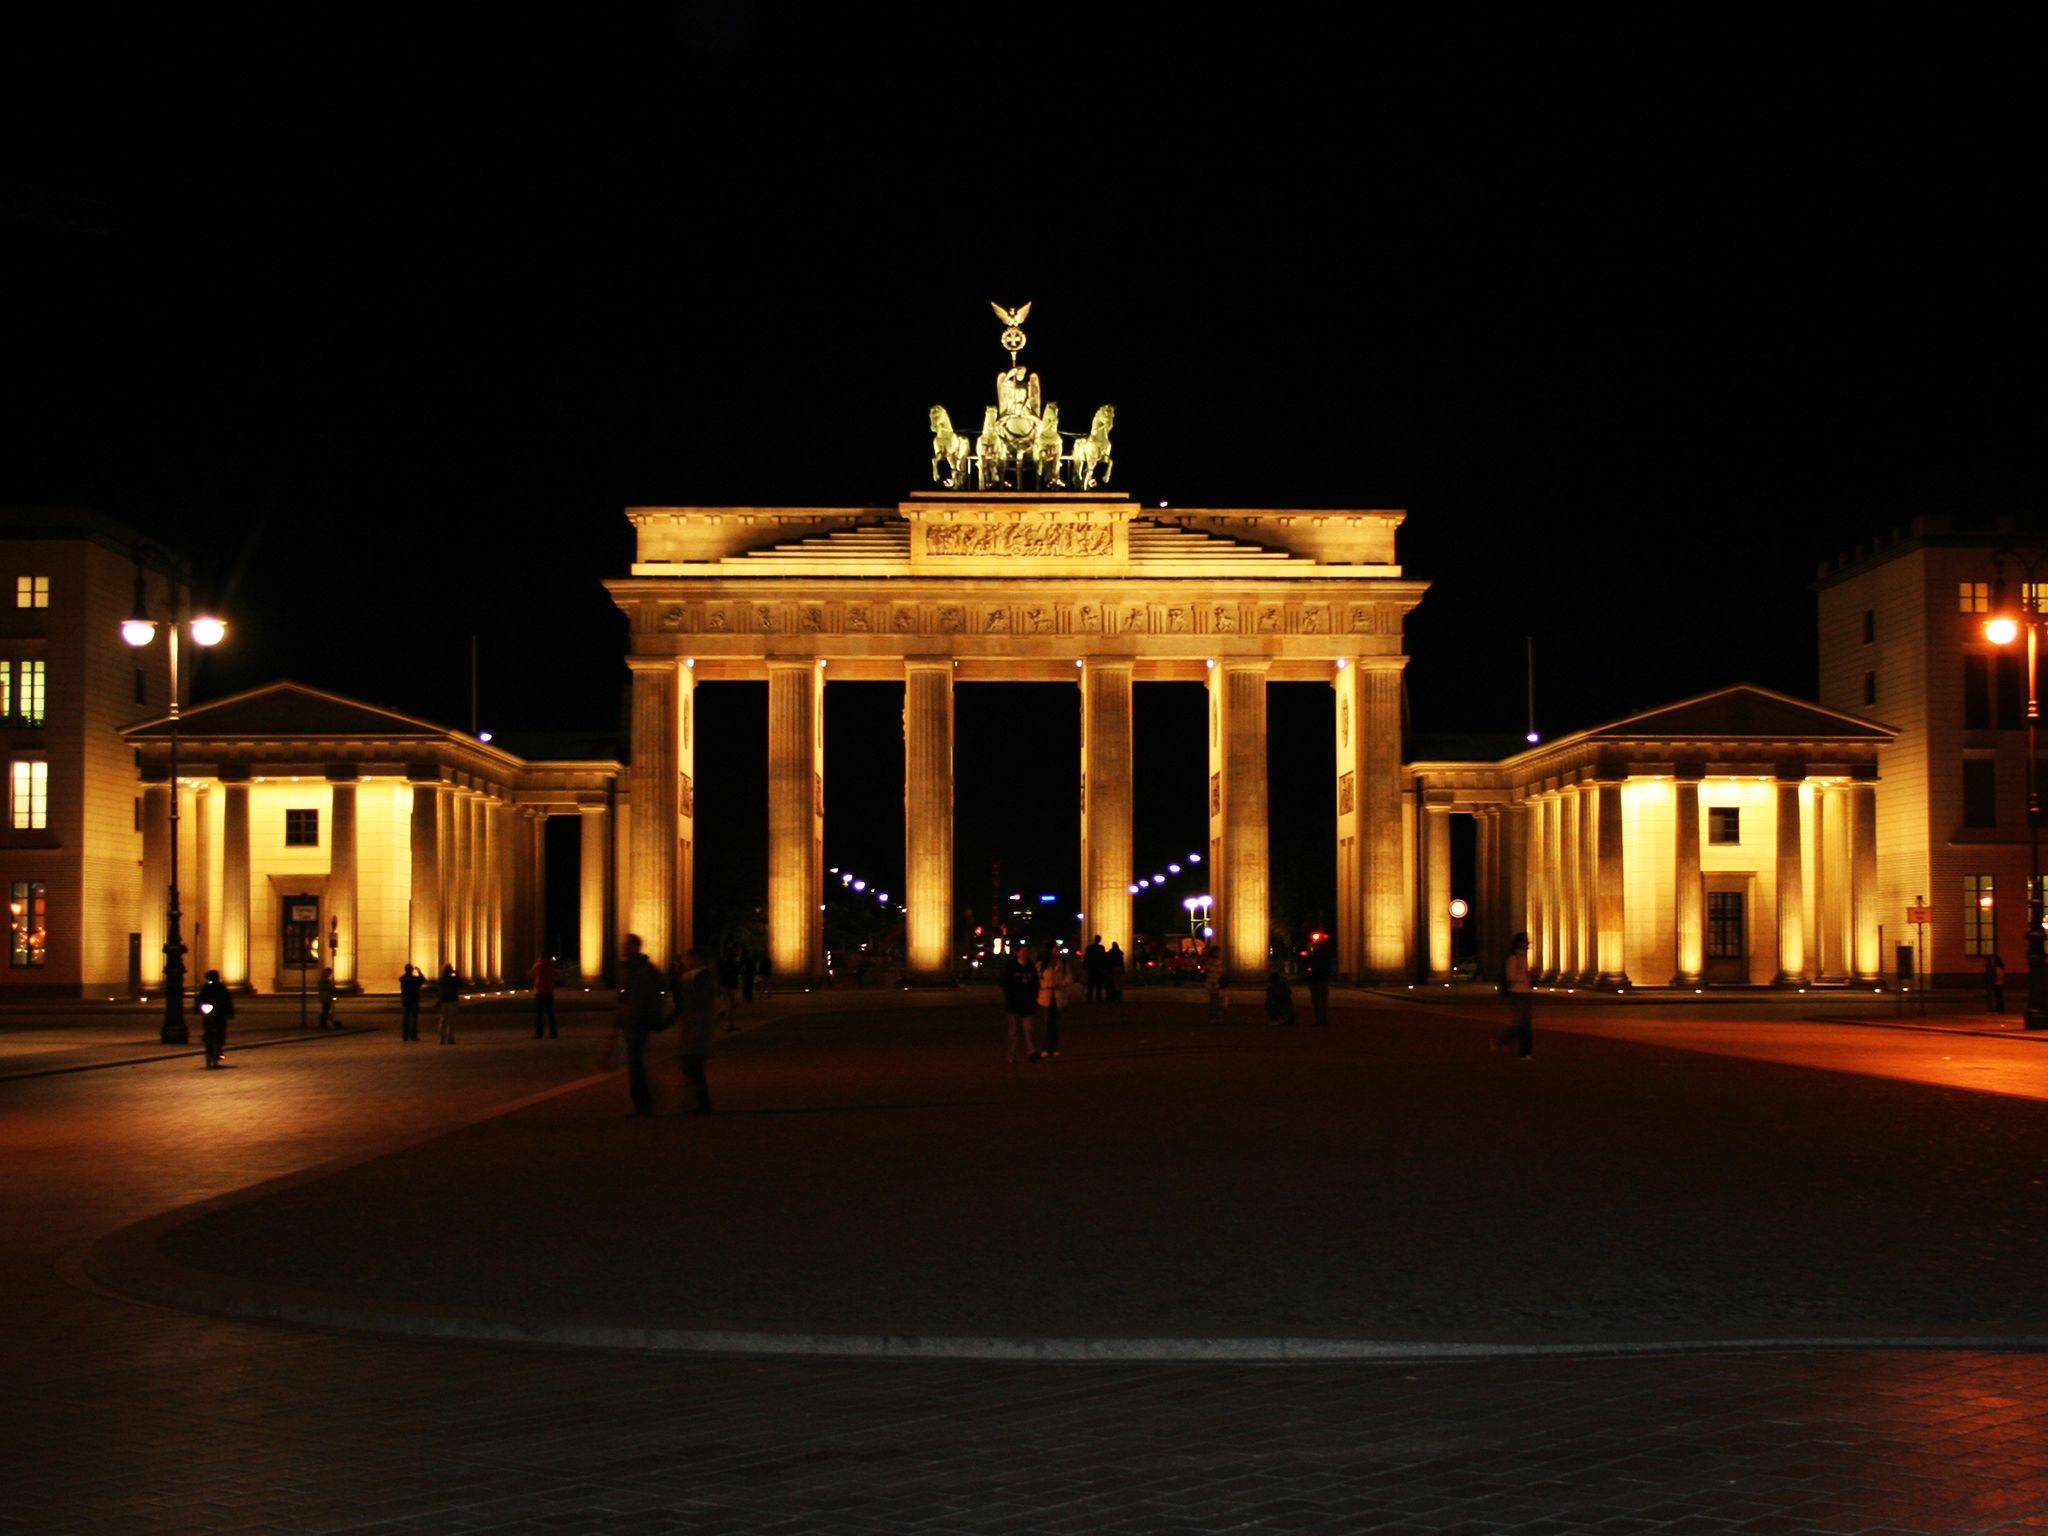 Brandenburg Gate in Berlin at night. This image is from Hasselhoff vs. The Berlin Wall. [Photo of the day - 十一月 2014]